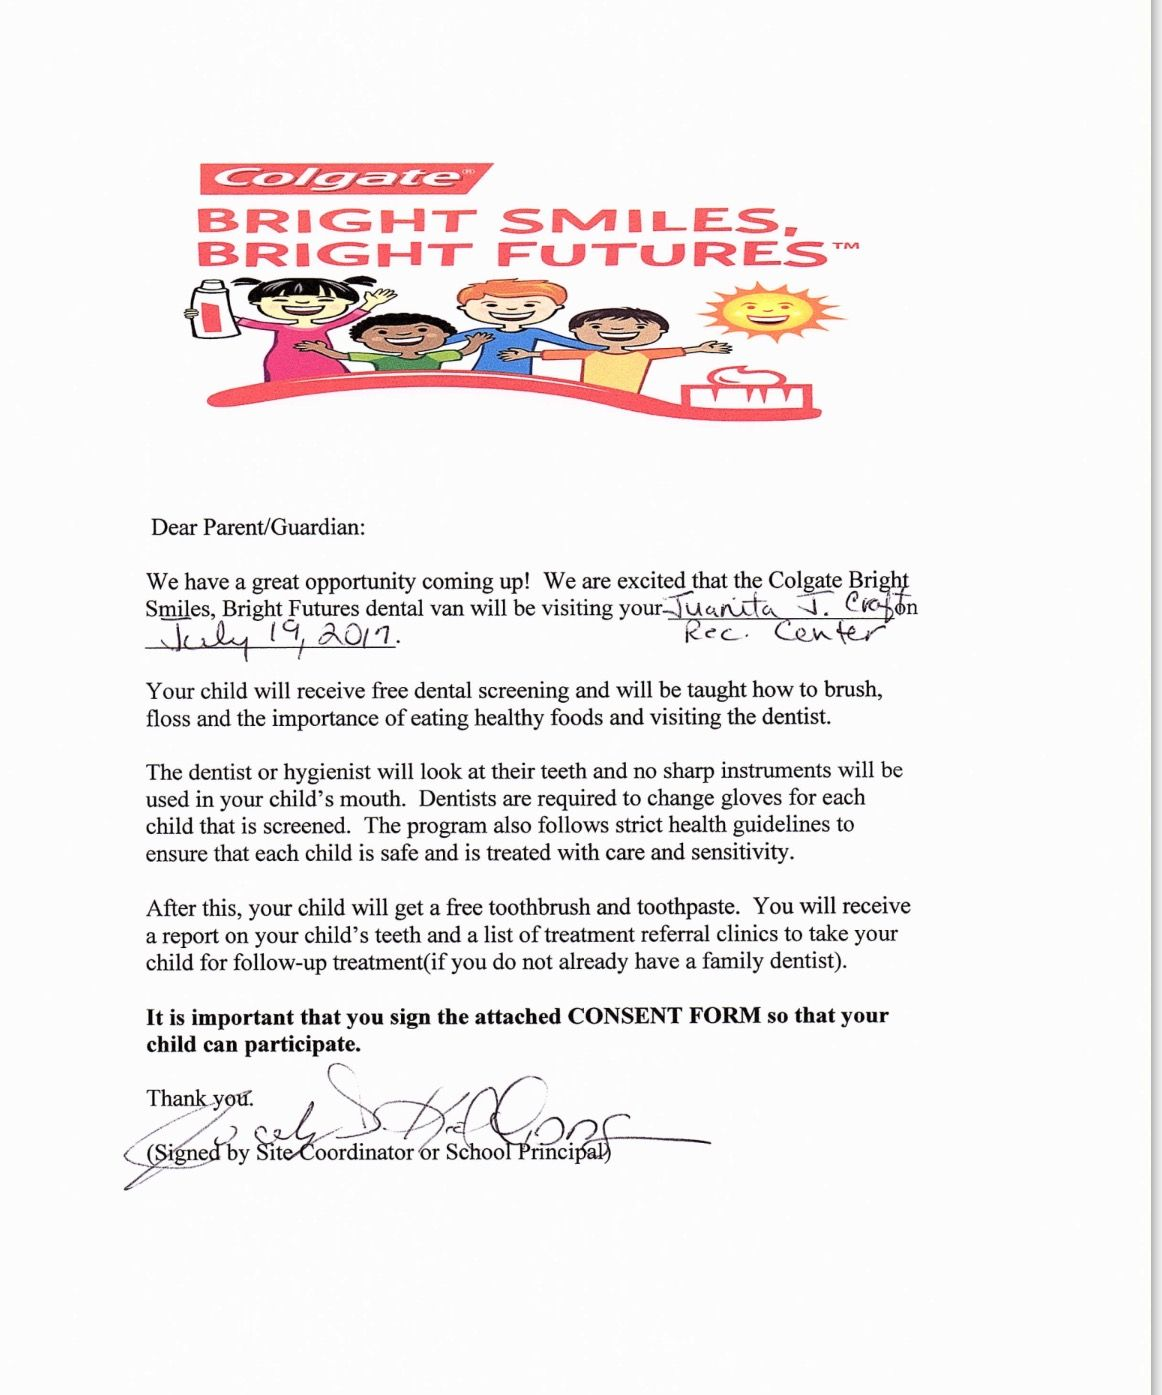 Colgate Brightsmilesbrightfutures Free Dental Screenings July